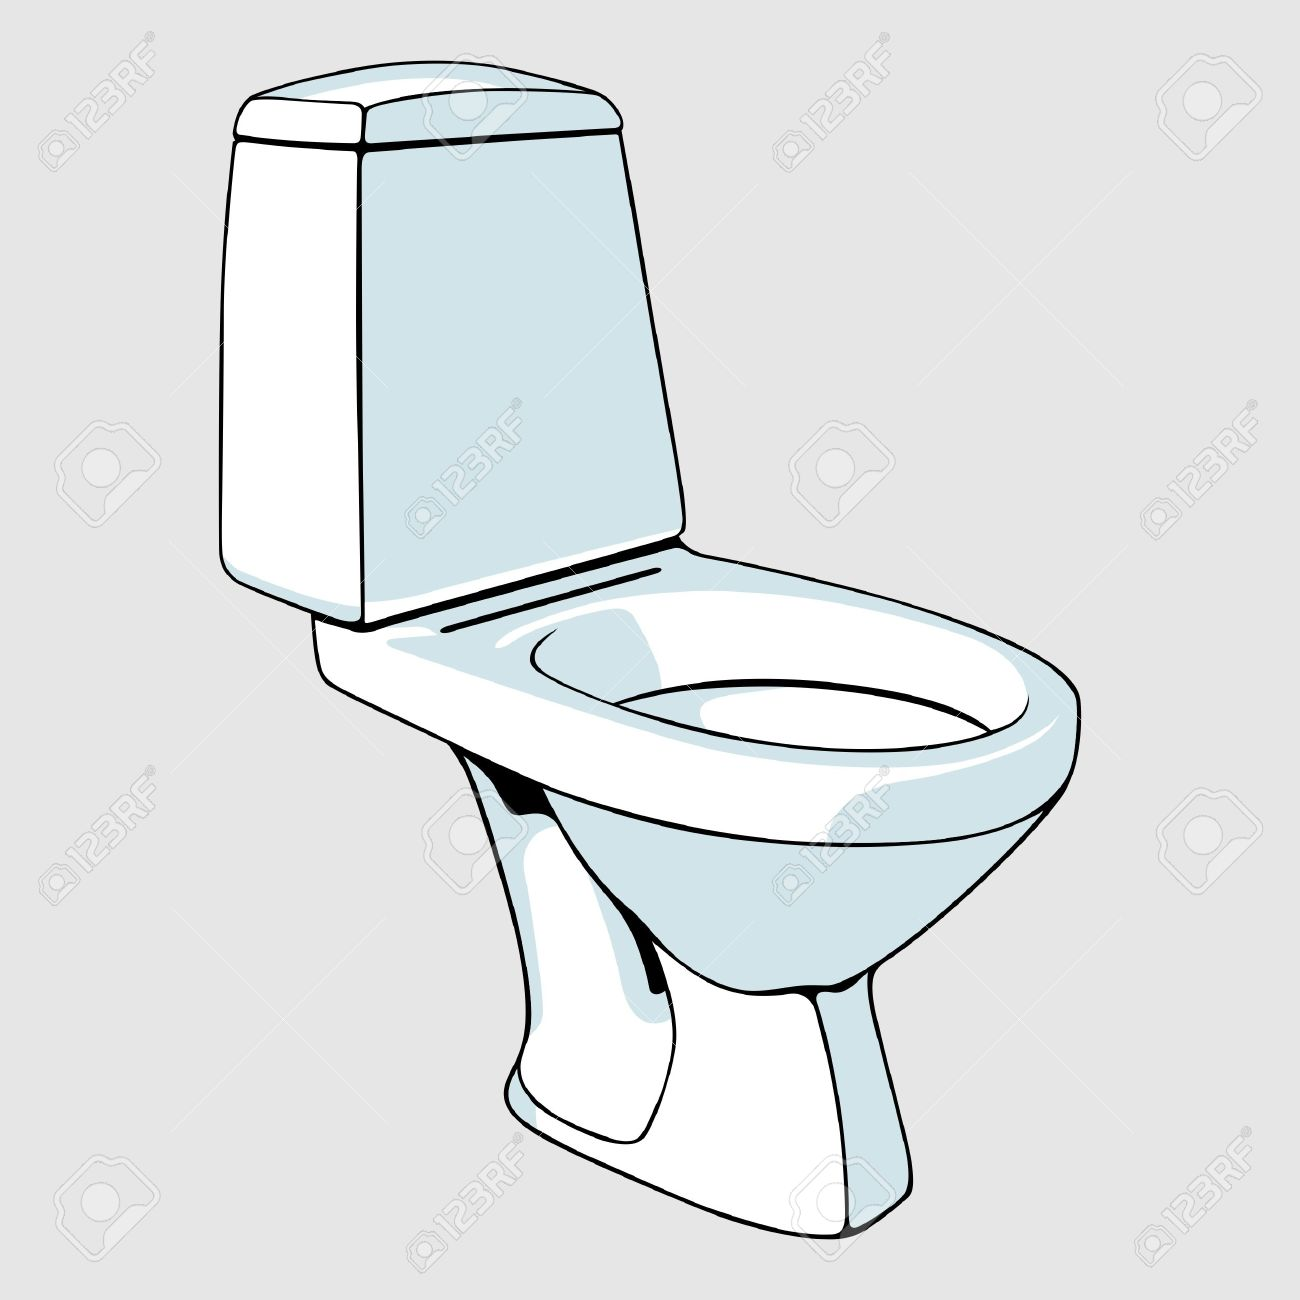 Toilet bowl Stock Vector   13611000. Toilet Bowl Royalty Free Cliparts  Vectors  And Stock Illustration